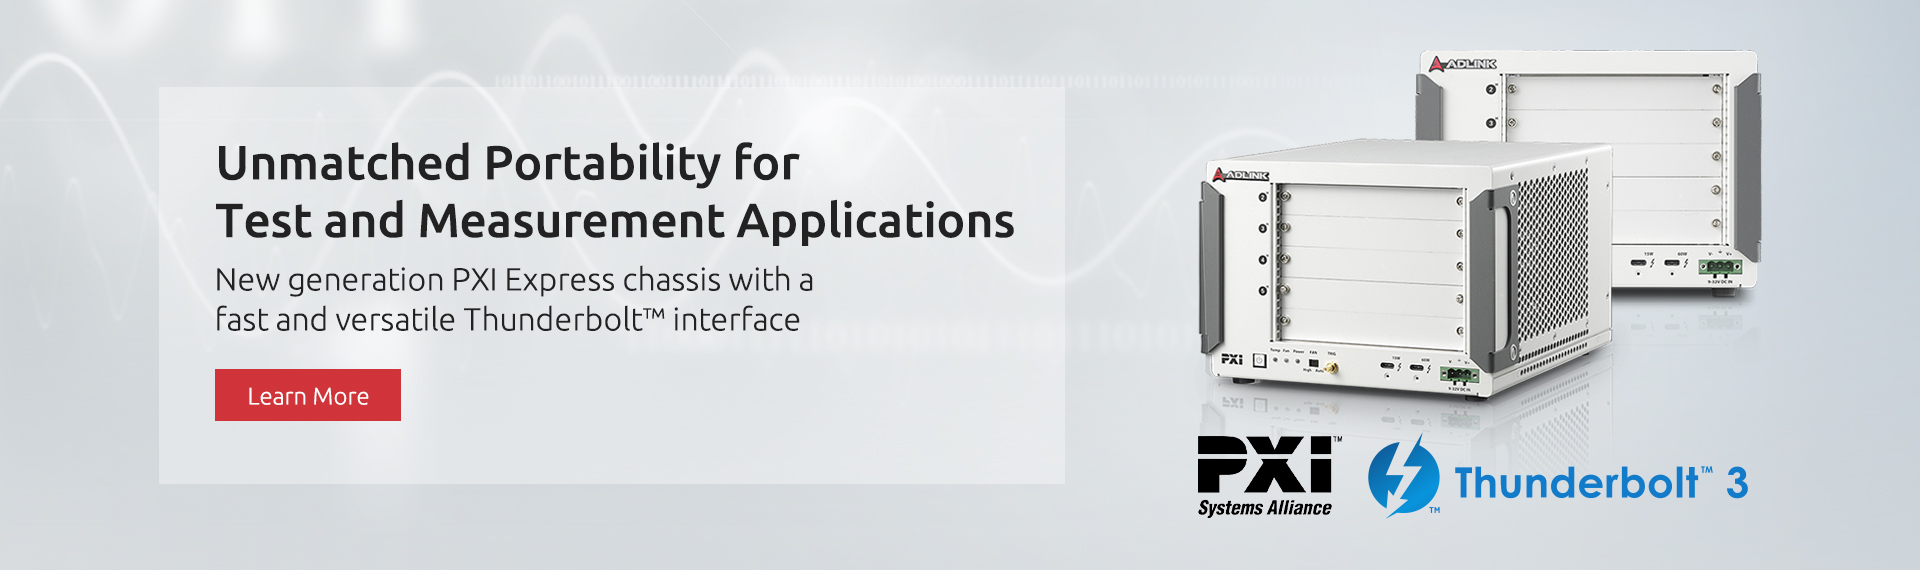 New generation PXI Express chassis with a fast and versatile Thunderbolt™ interface